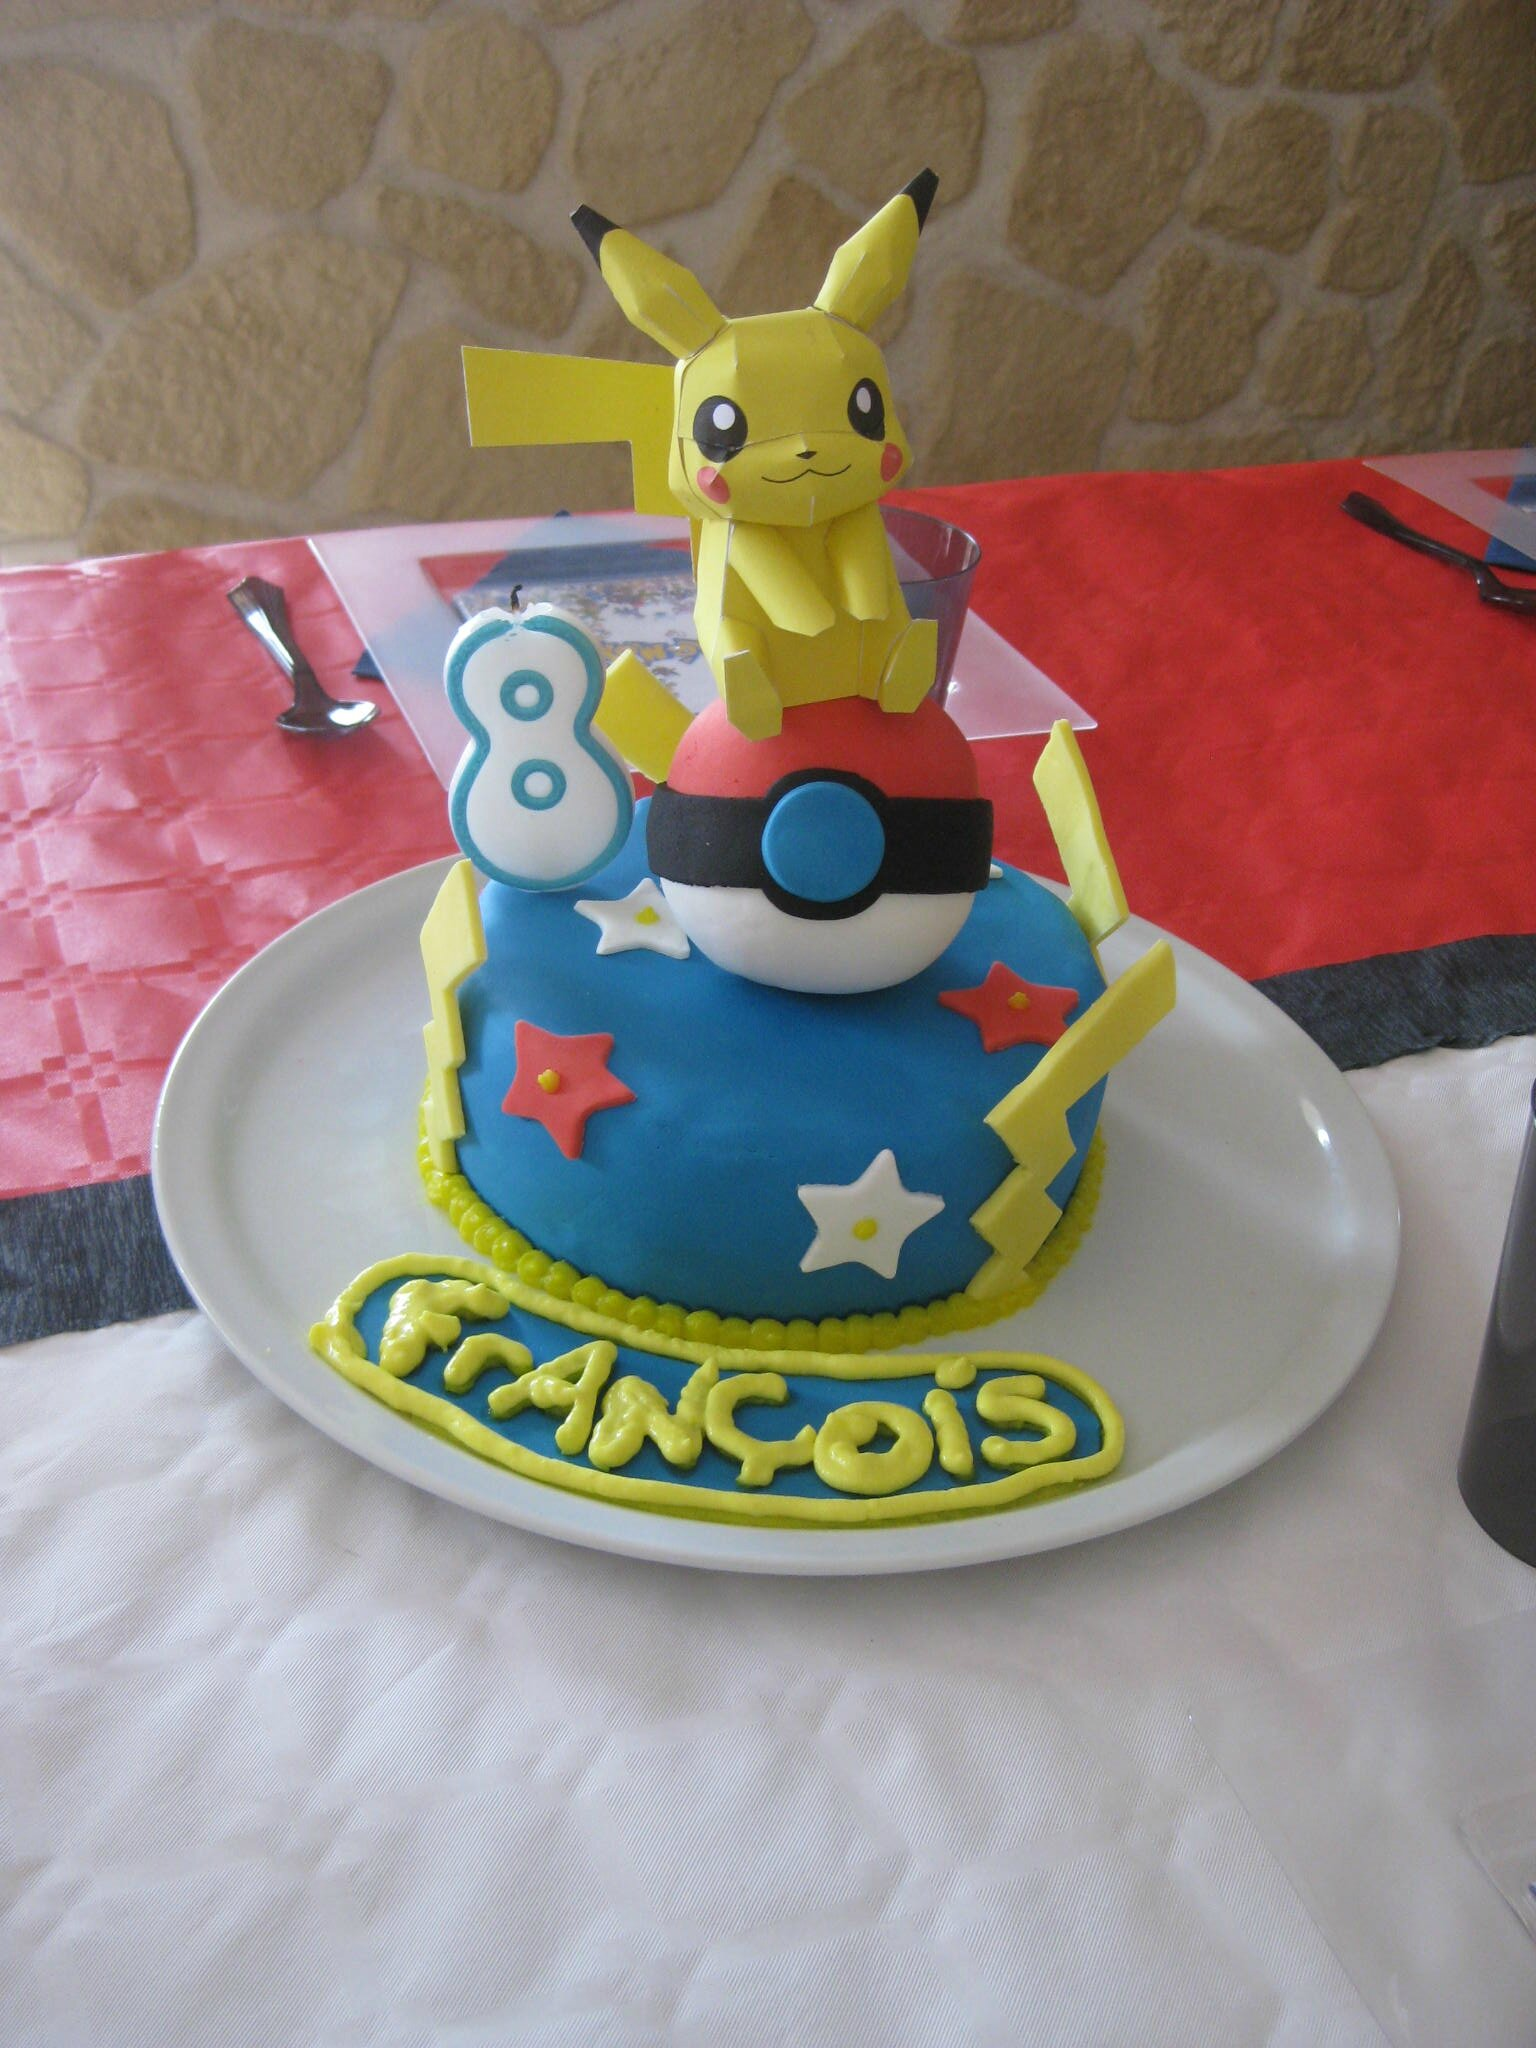 anniversaire pokemon 2 les hobbies d 39 aur lie. Black Bedroom Furniture Sets. Home Design Ideas